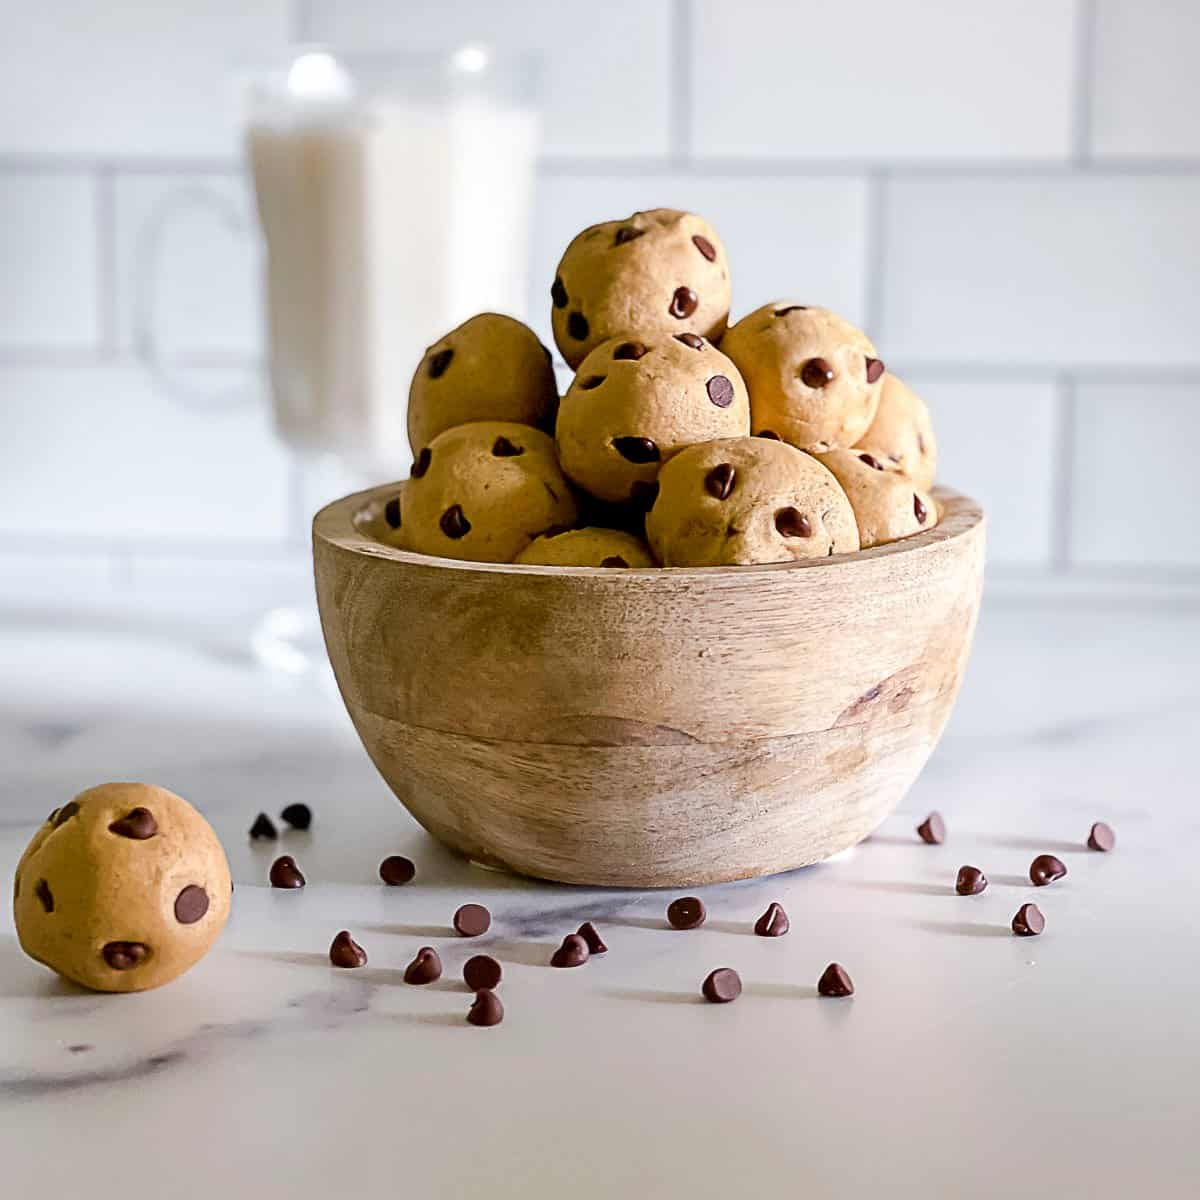 Cookie dough bites stacked in a wooden bowl with one on table.